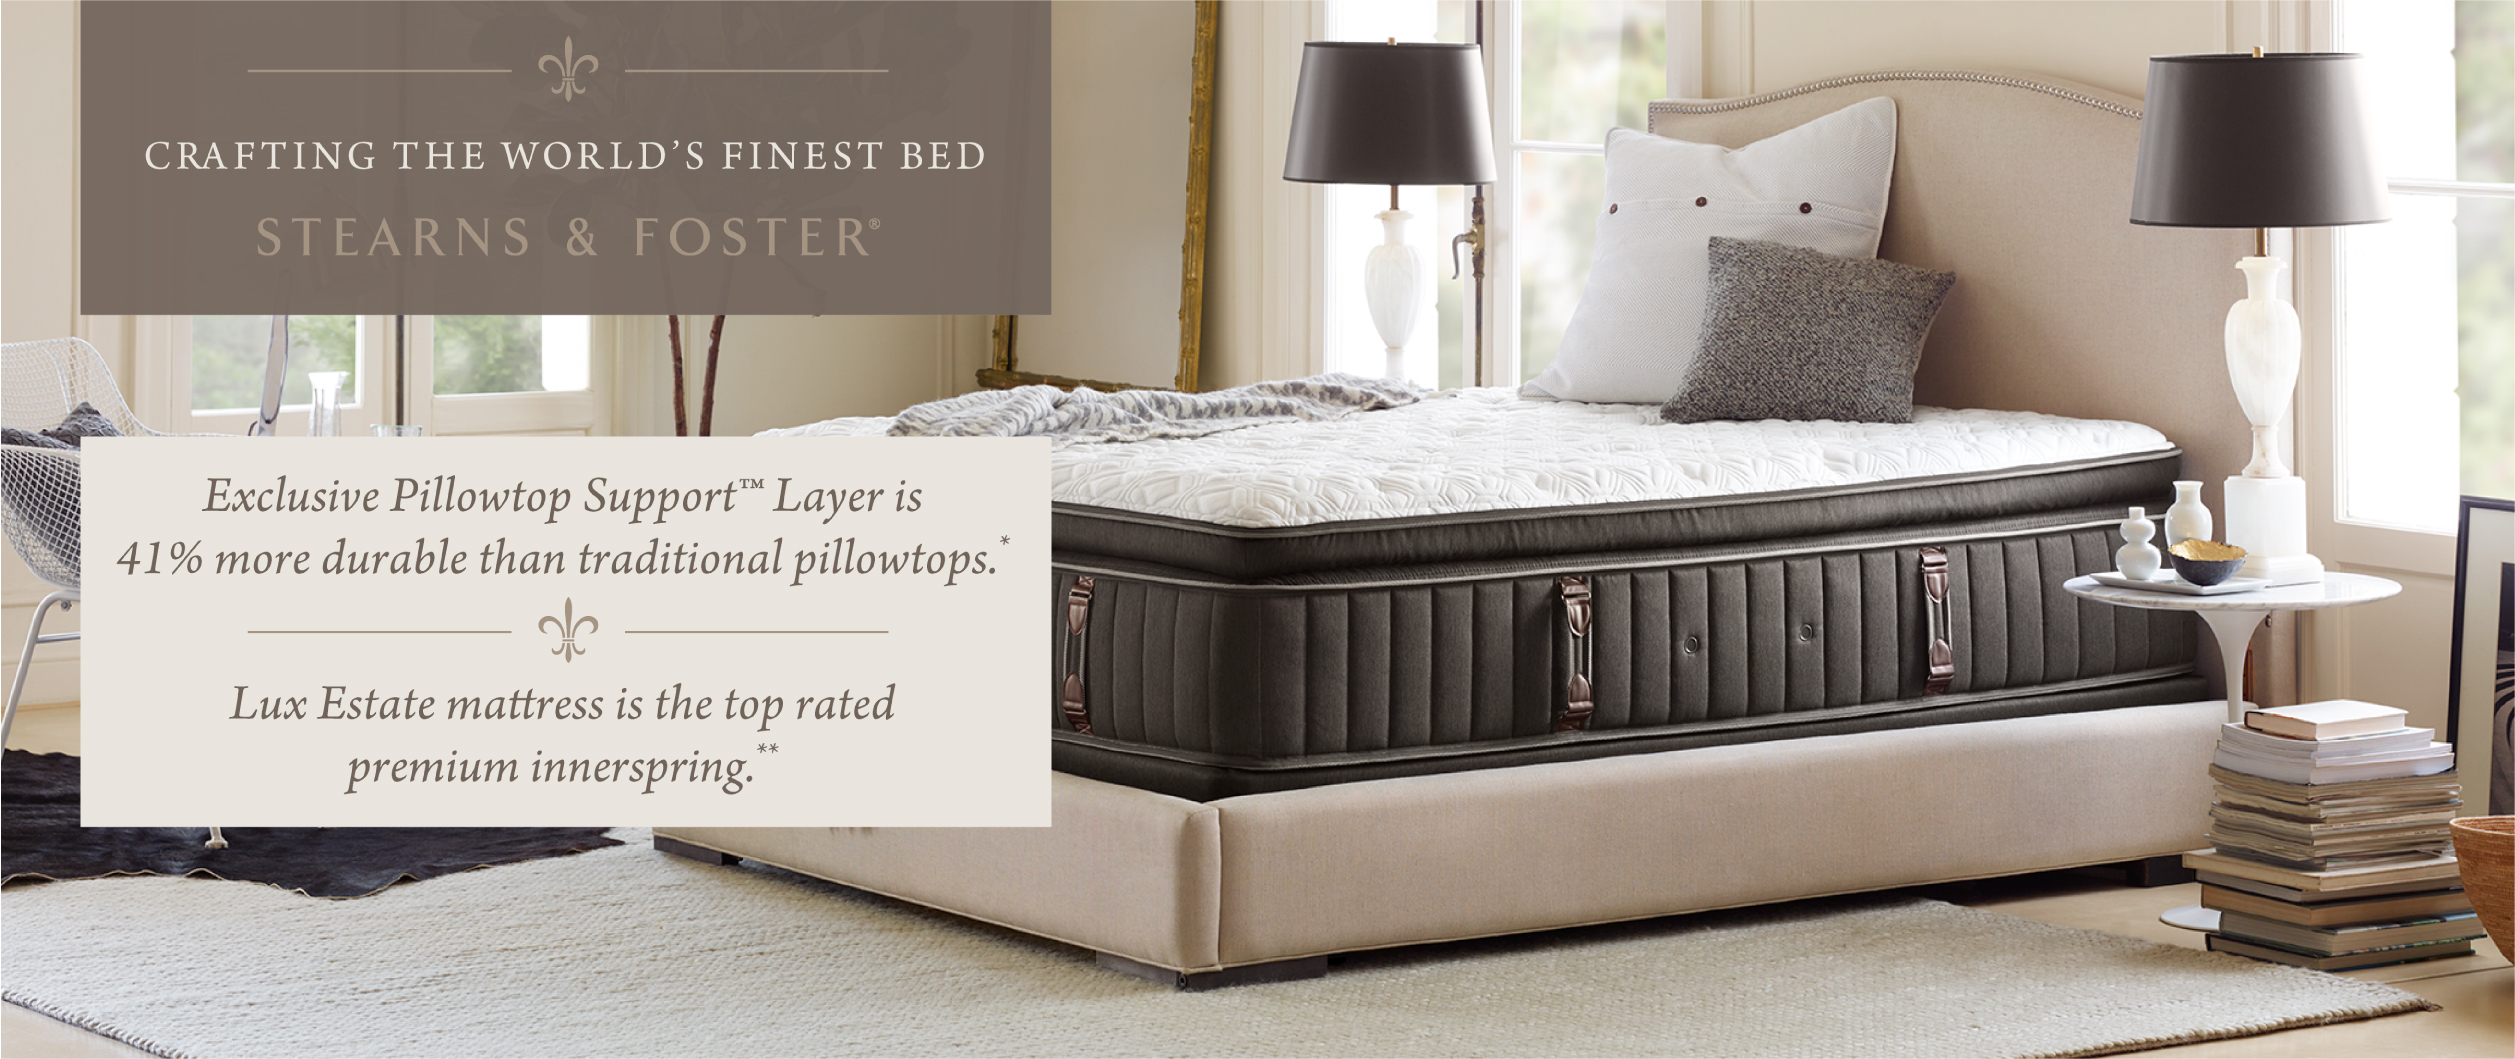 Stearns & Foster dressed bed